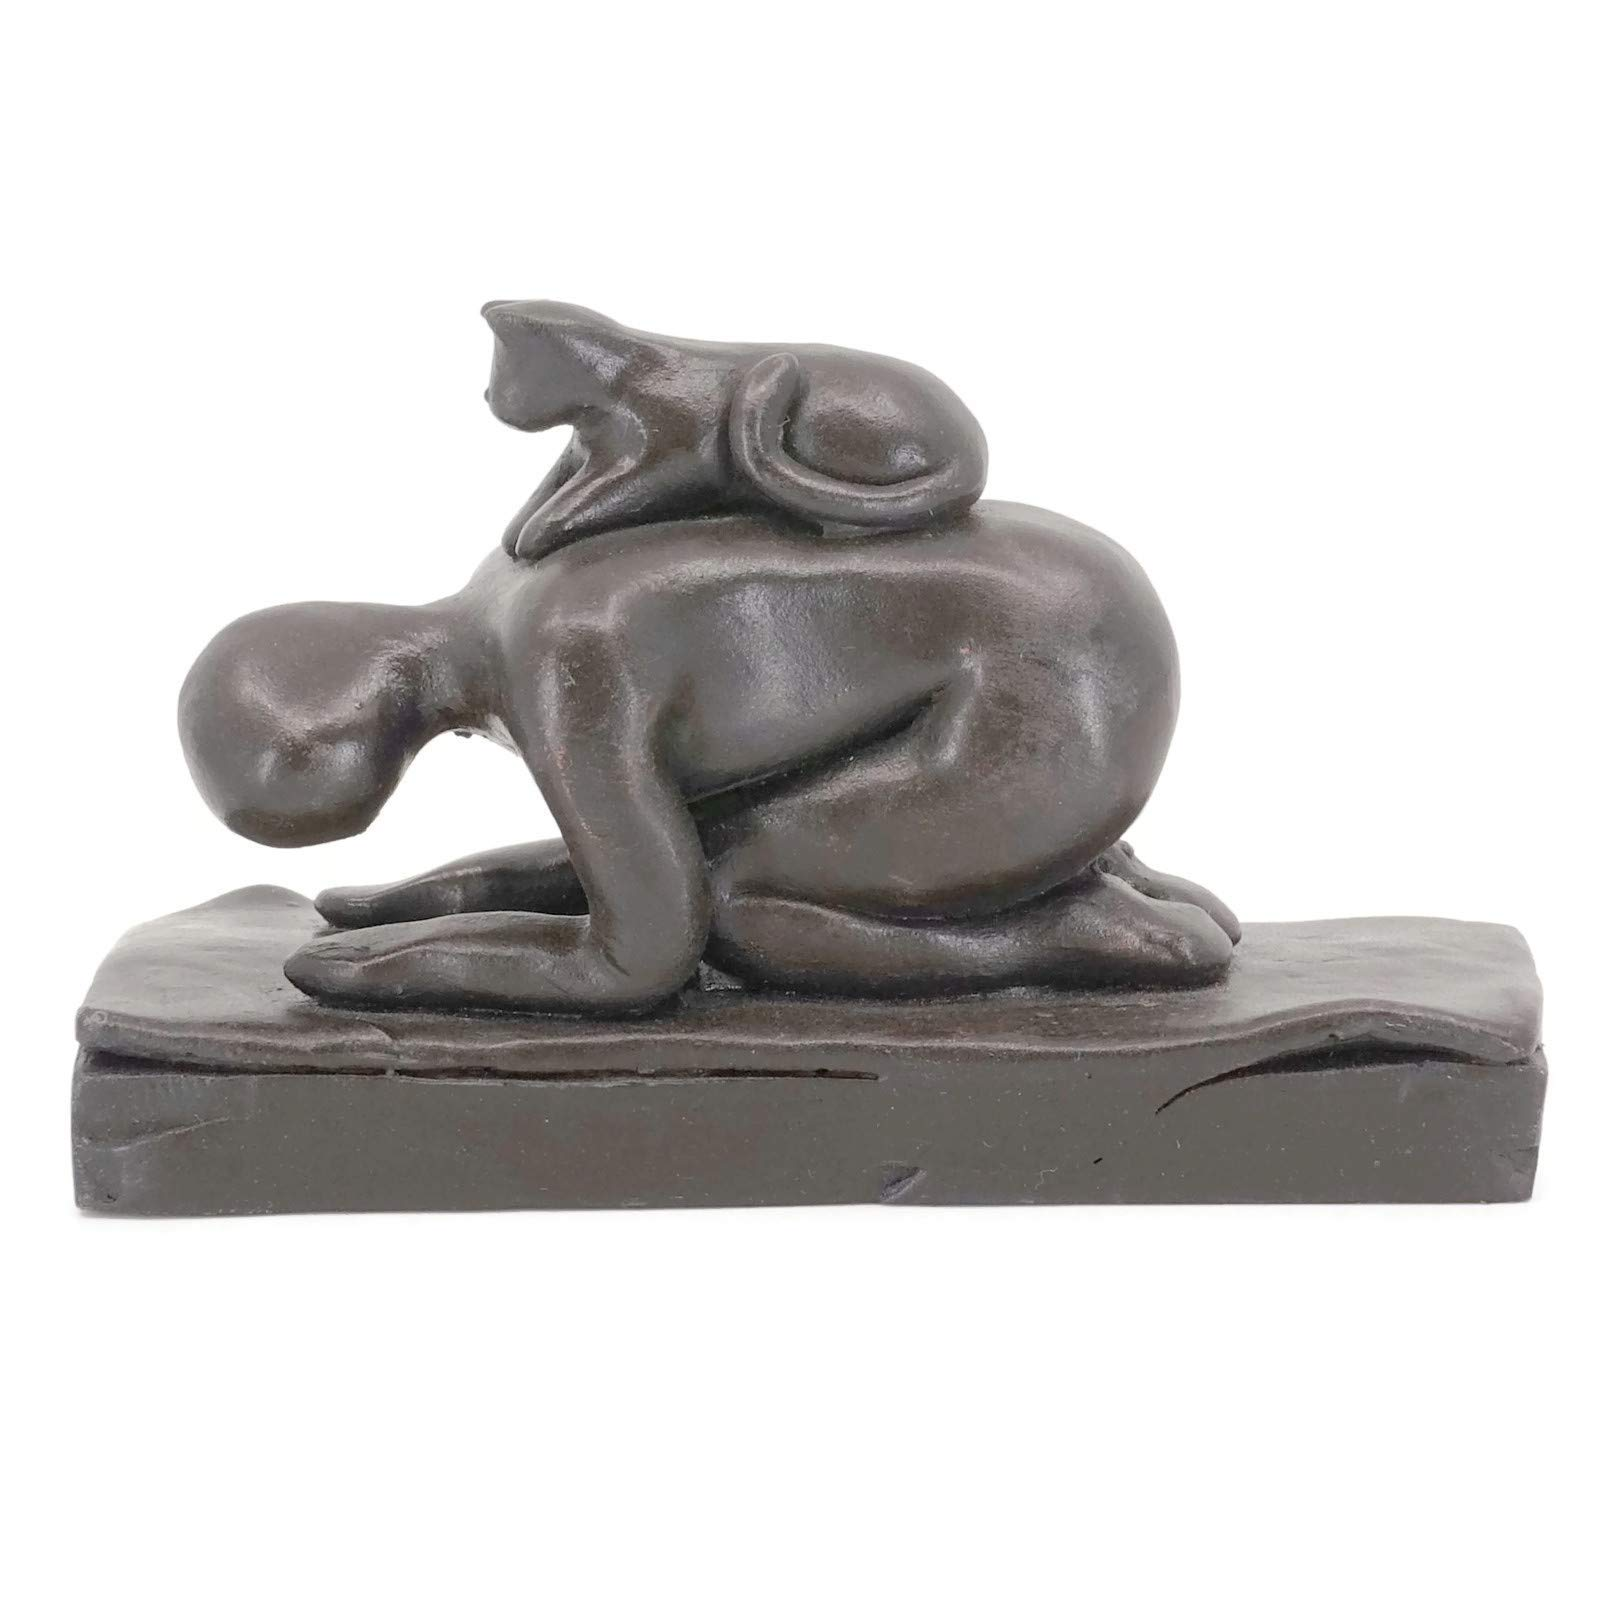 Yoga Sculpture with Funny Cat, Cat-Assisted Child's Pose, Handmade Cast-Stone in Gift Box